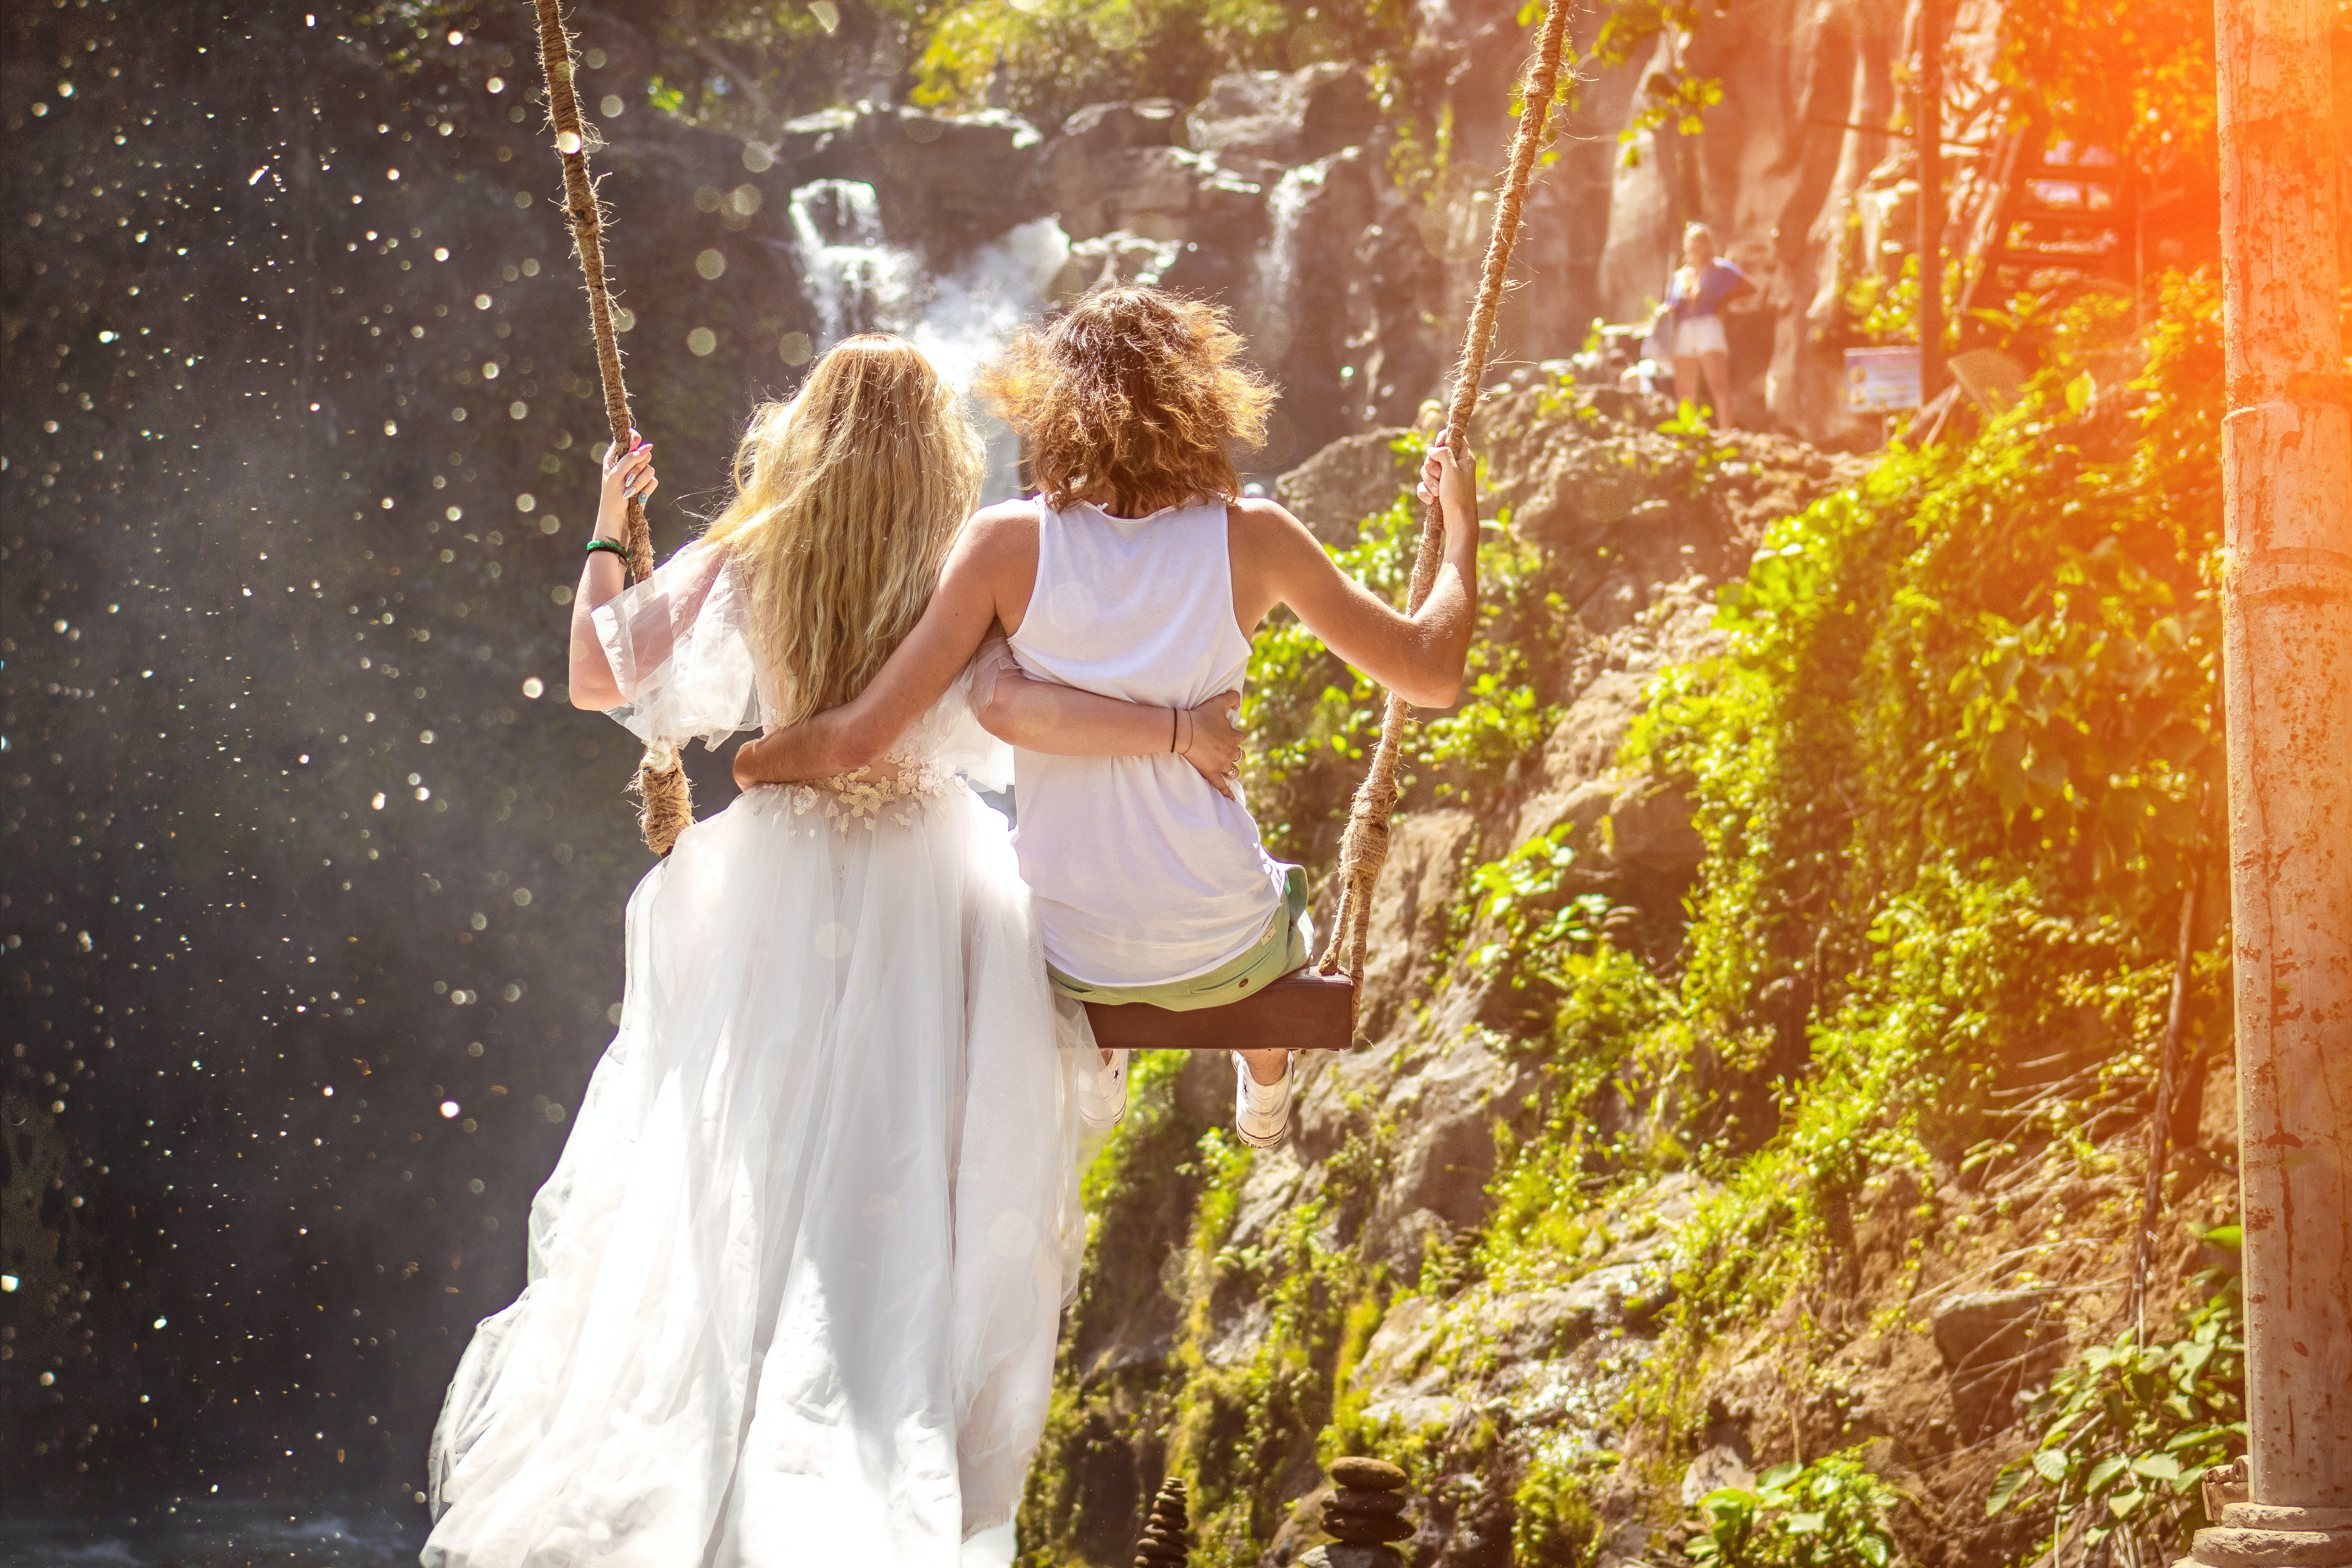 Woman and Woman Riding Wooden Swing in Front of Rock Formation